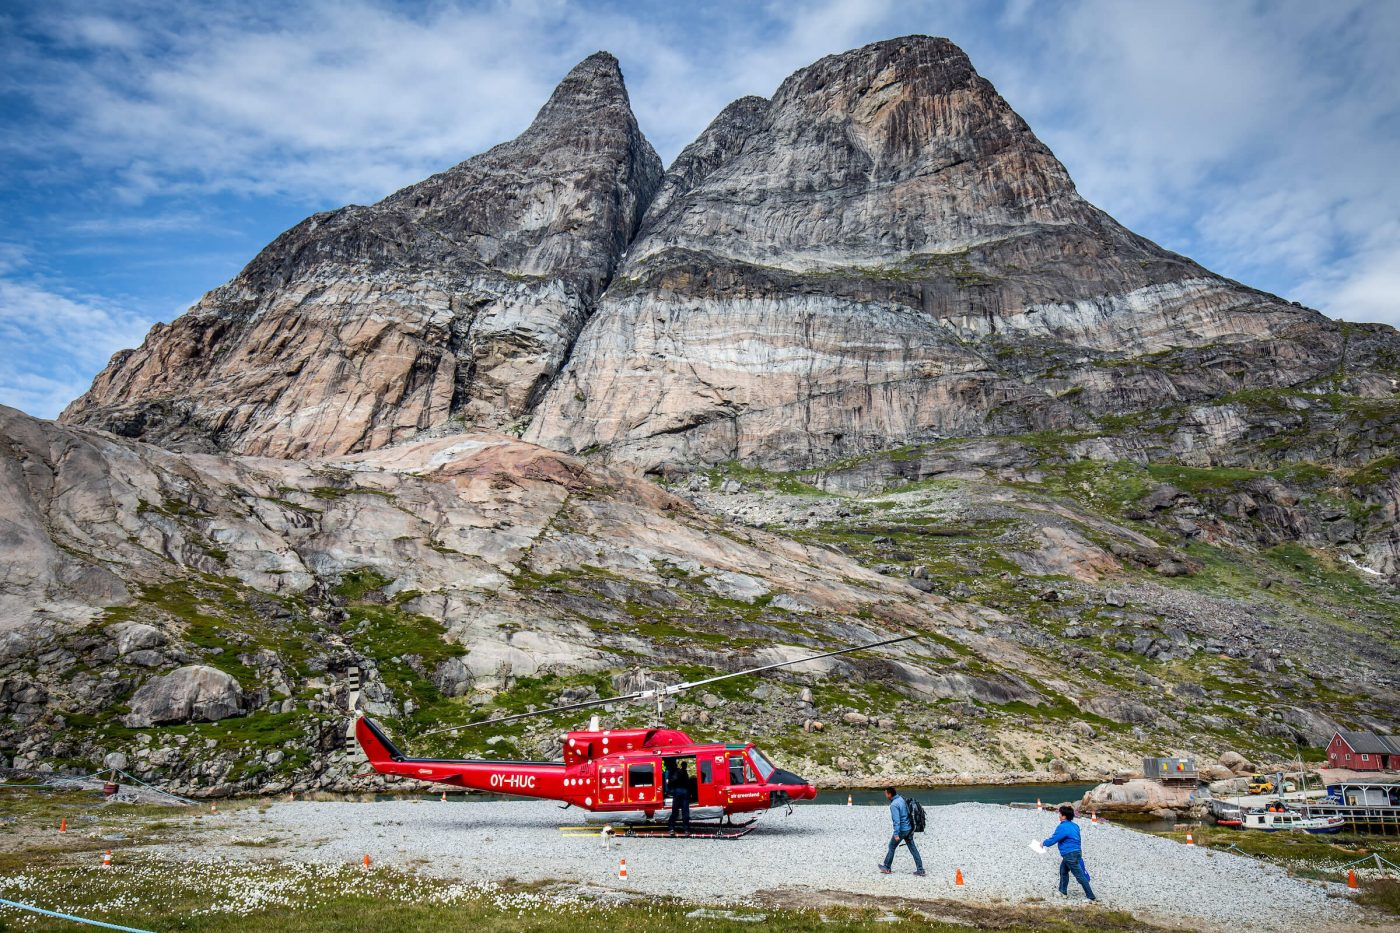 Passengers and service personel approaching a parked Air Greenland Bell 212 helicopter in Aappilattoq in South Greenland. Photo by Mads Pihl.